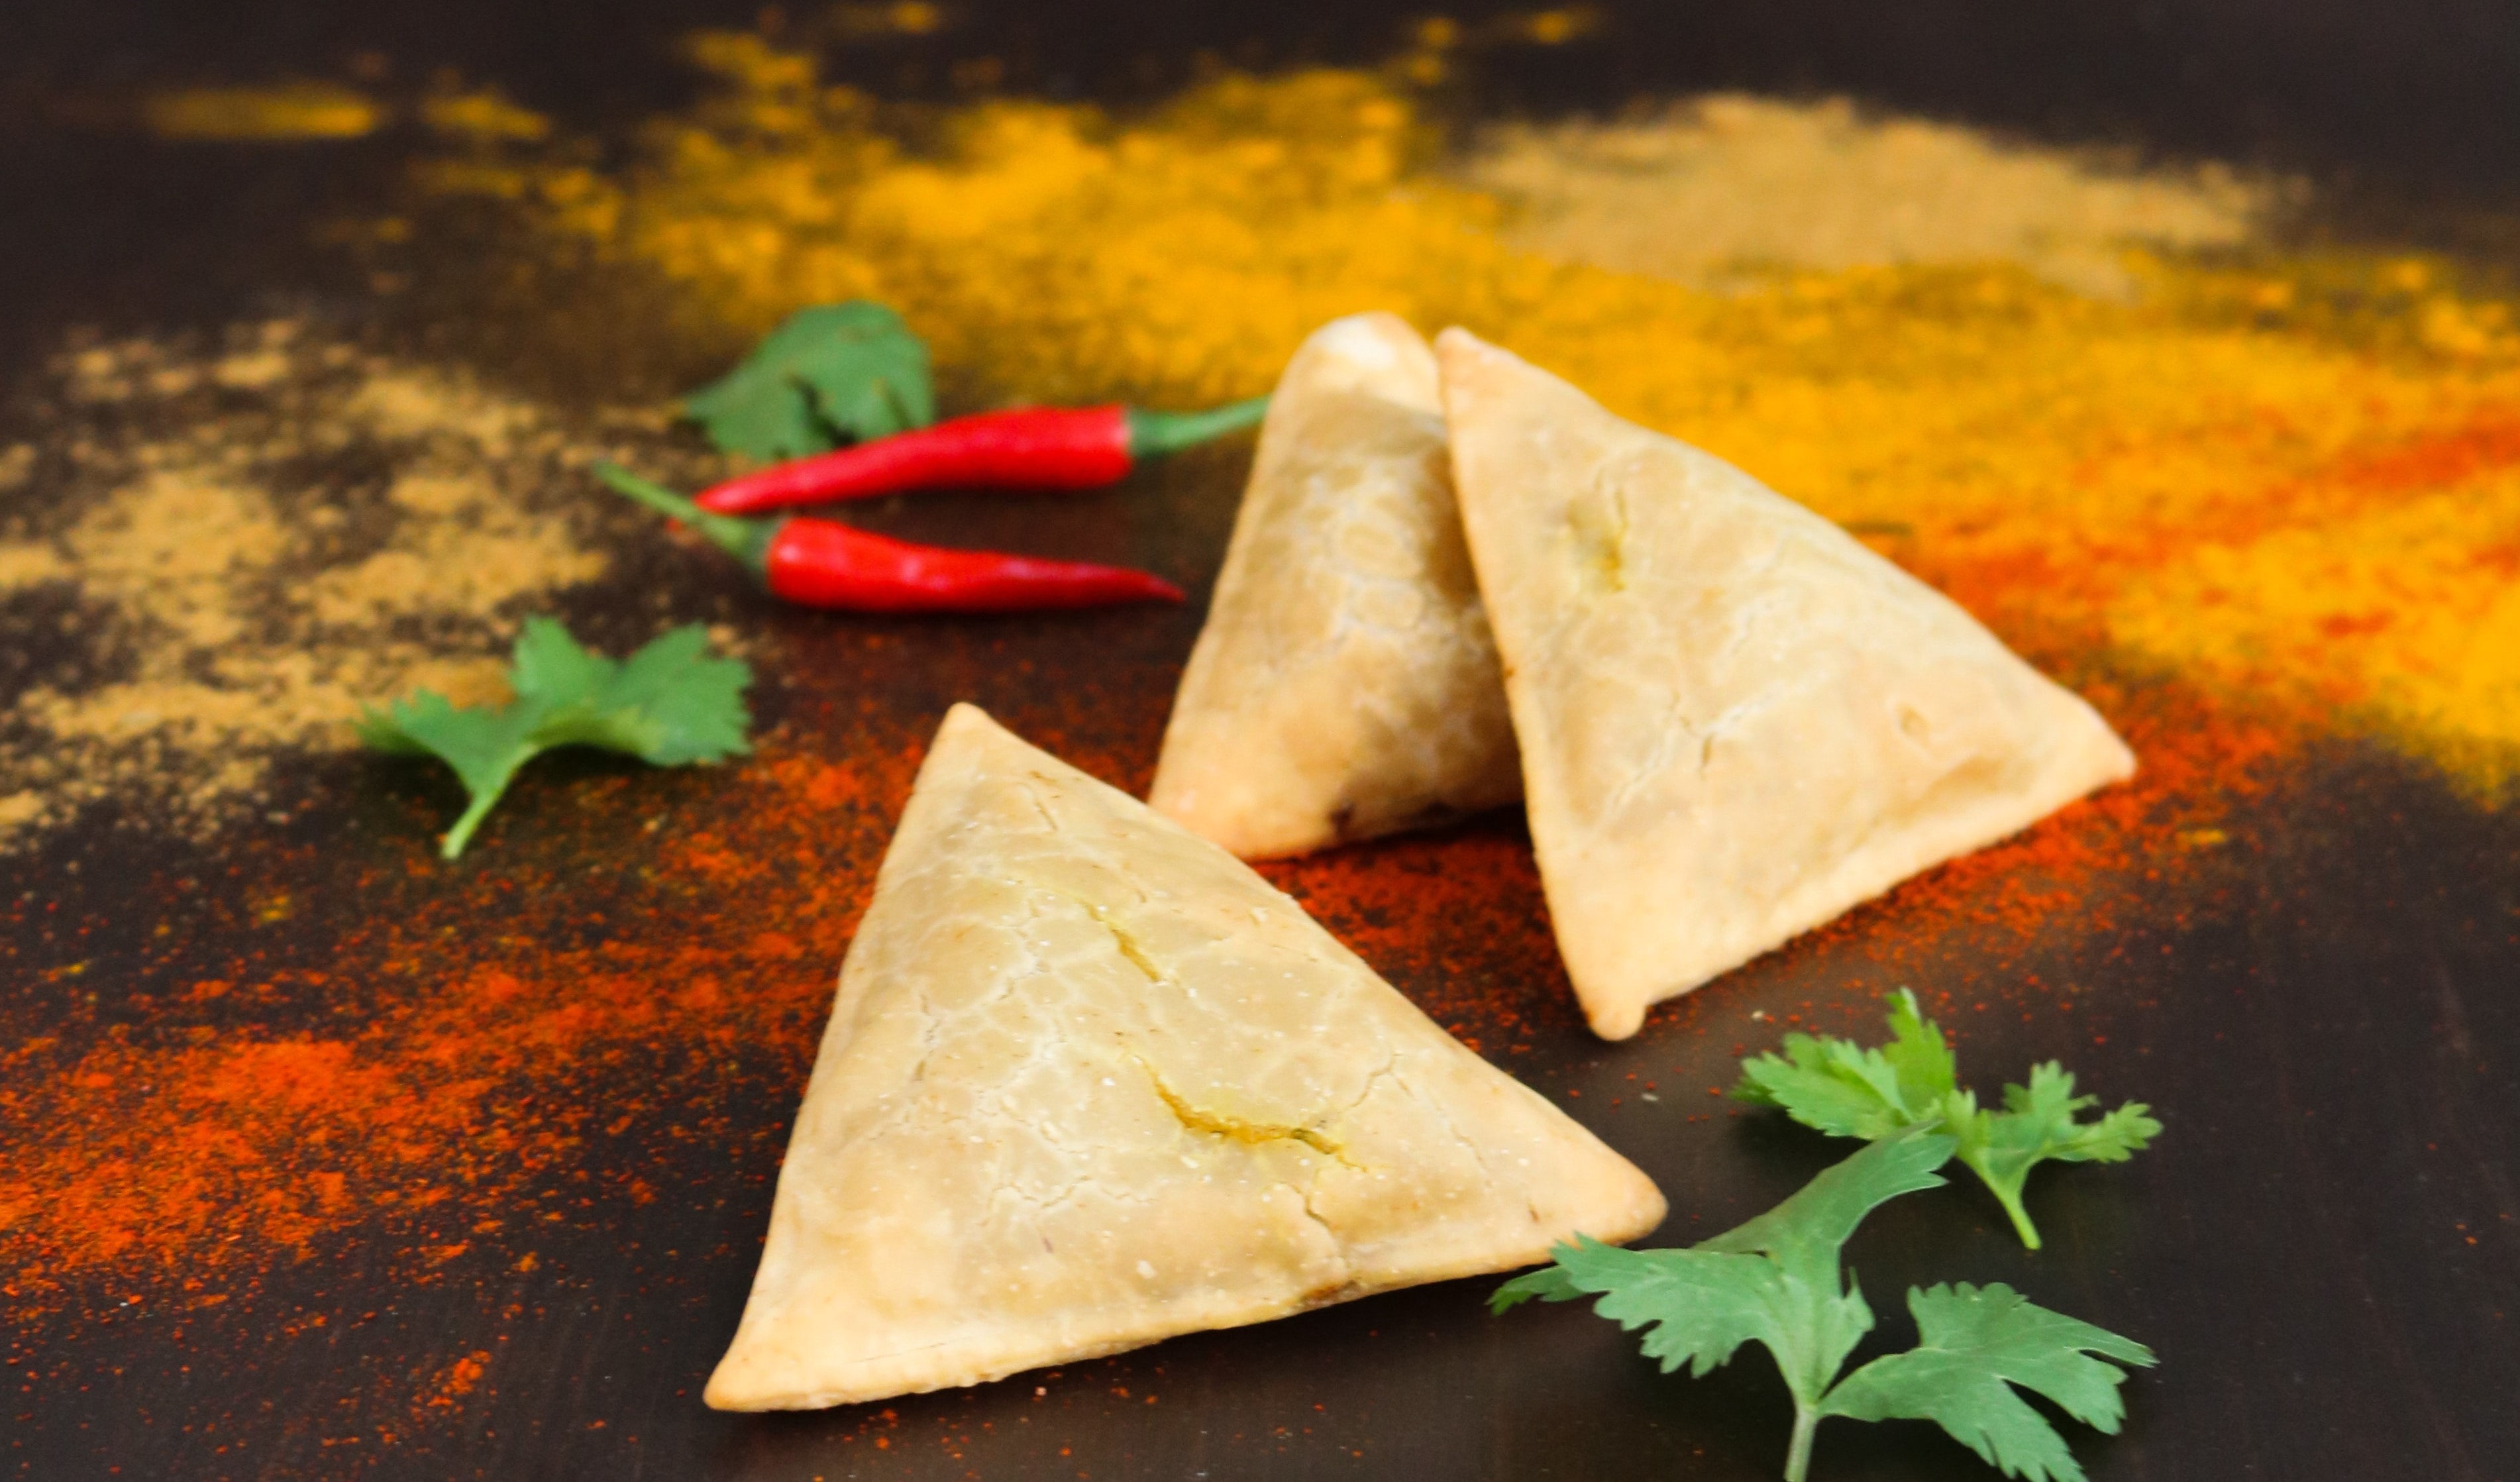 Samosas lie on a worktop next to a few sprigs of coriander and chillies.